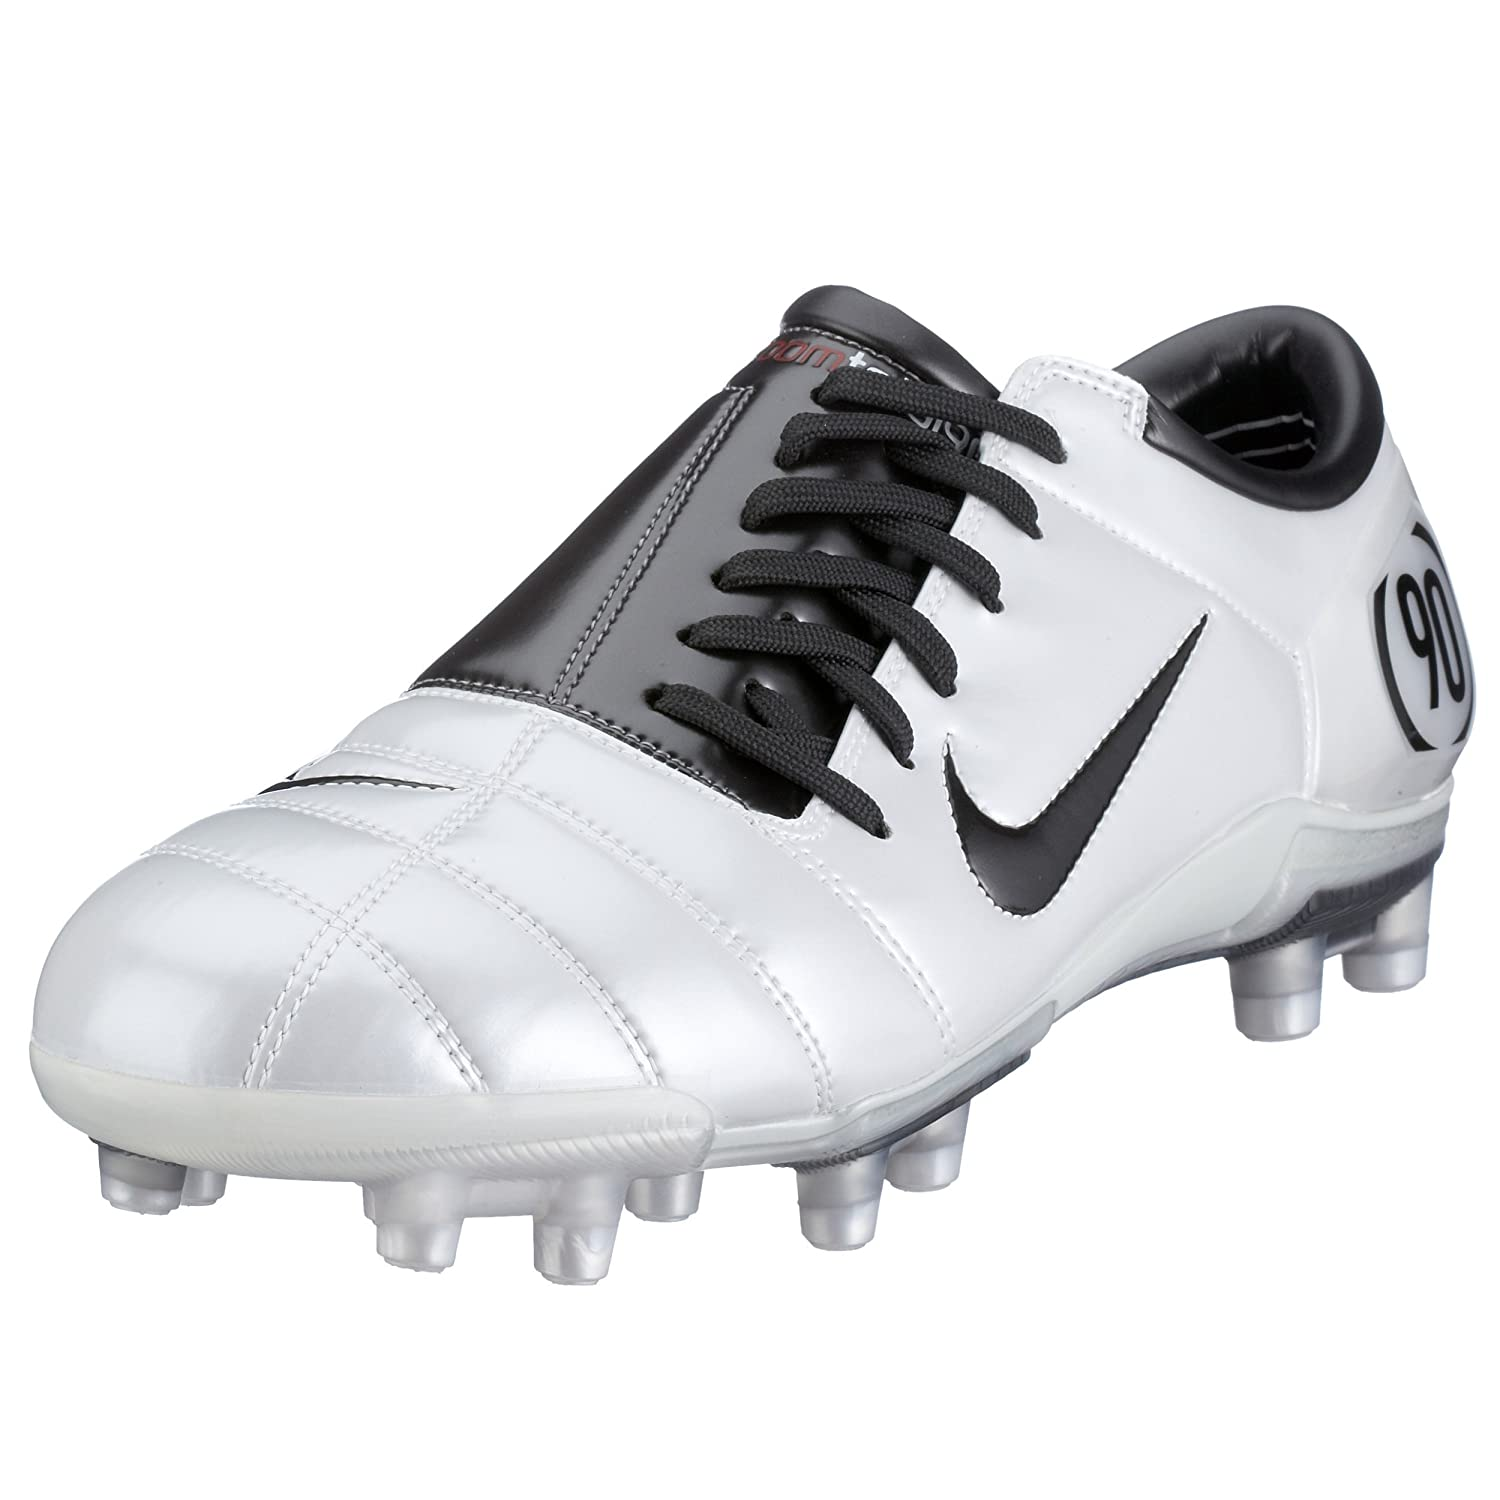 huge discount e2e24 90809 Nike Men's Air Zoom Total 90 III FG Wht/Charcoal 308229-103 ...